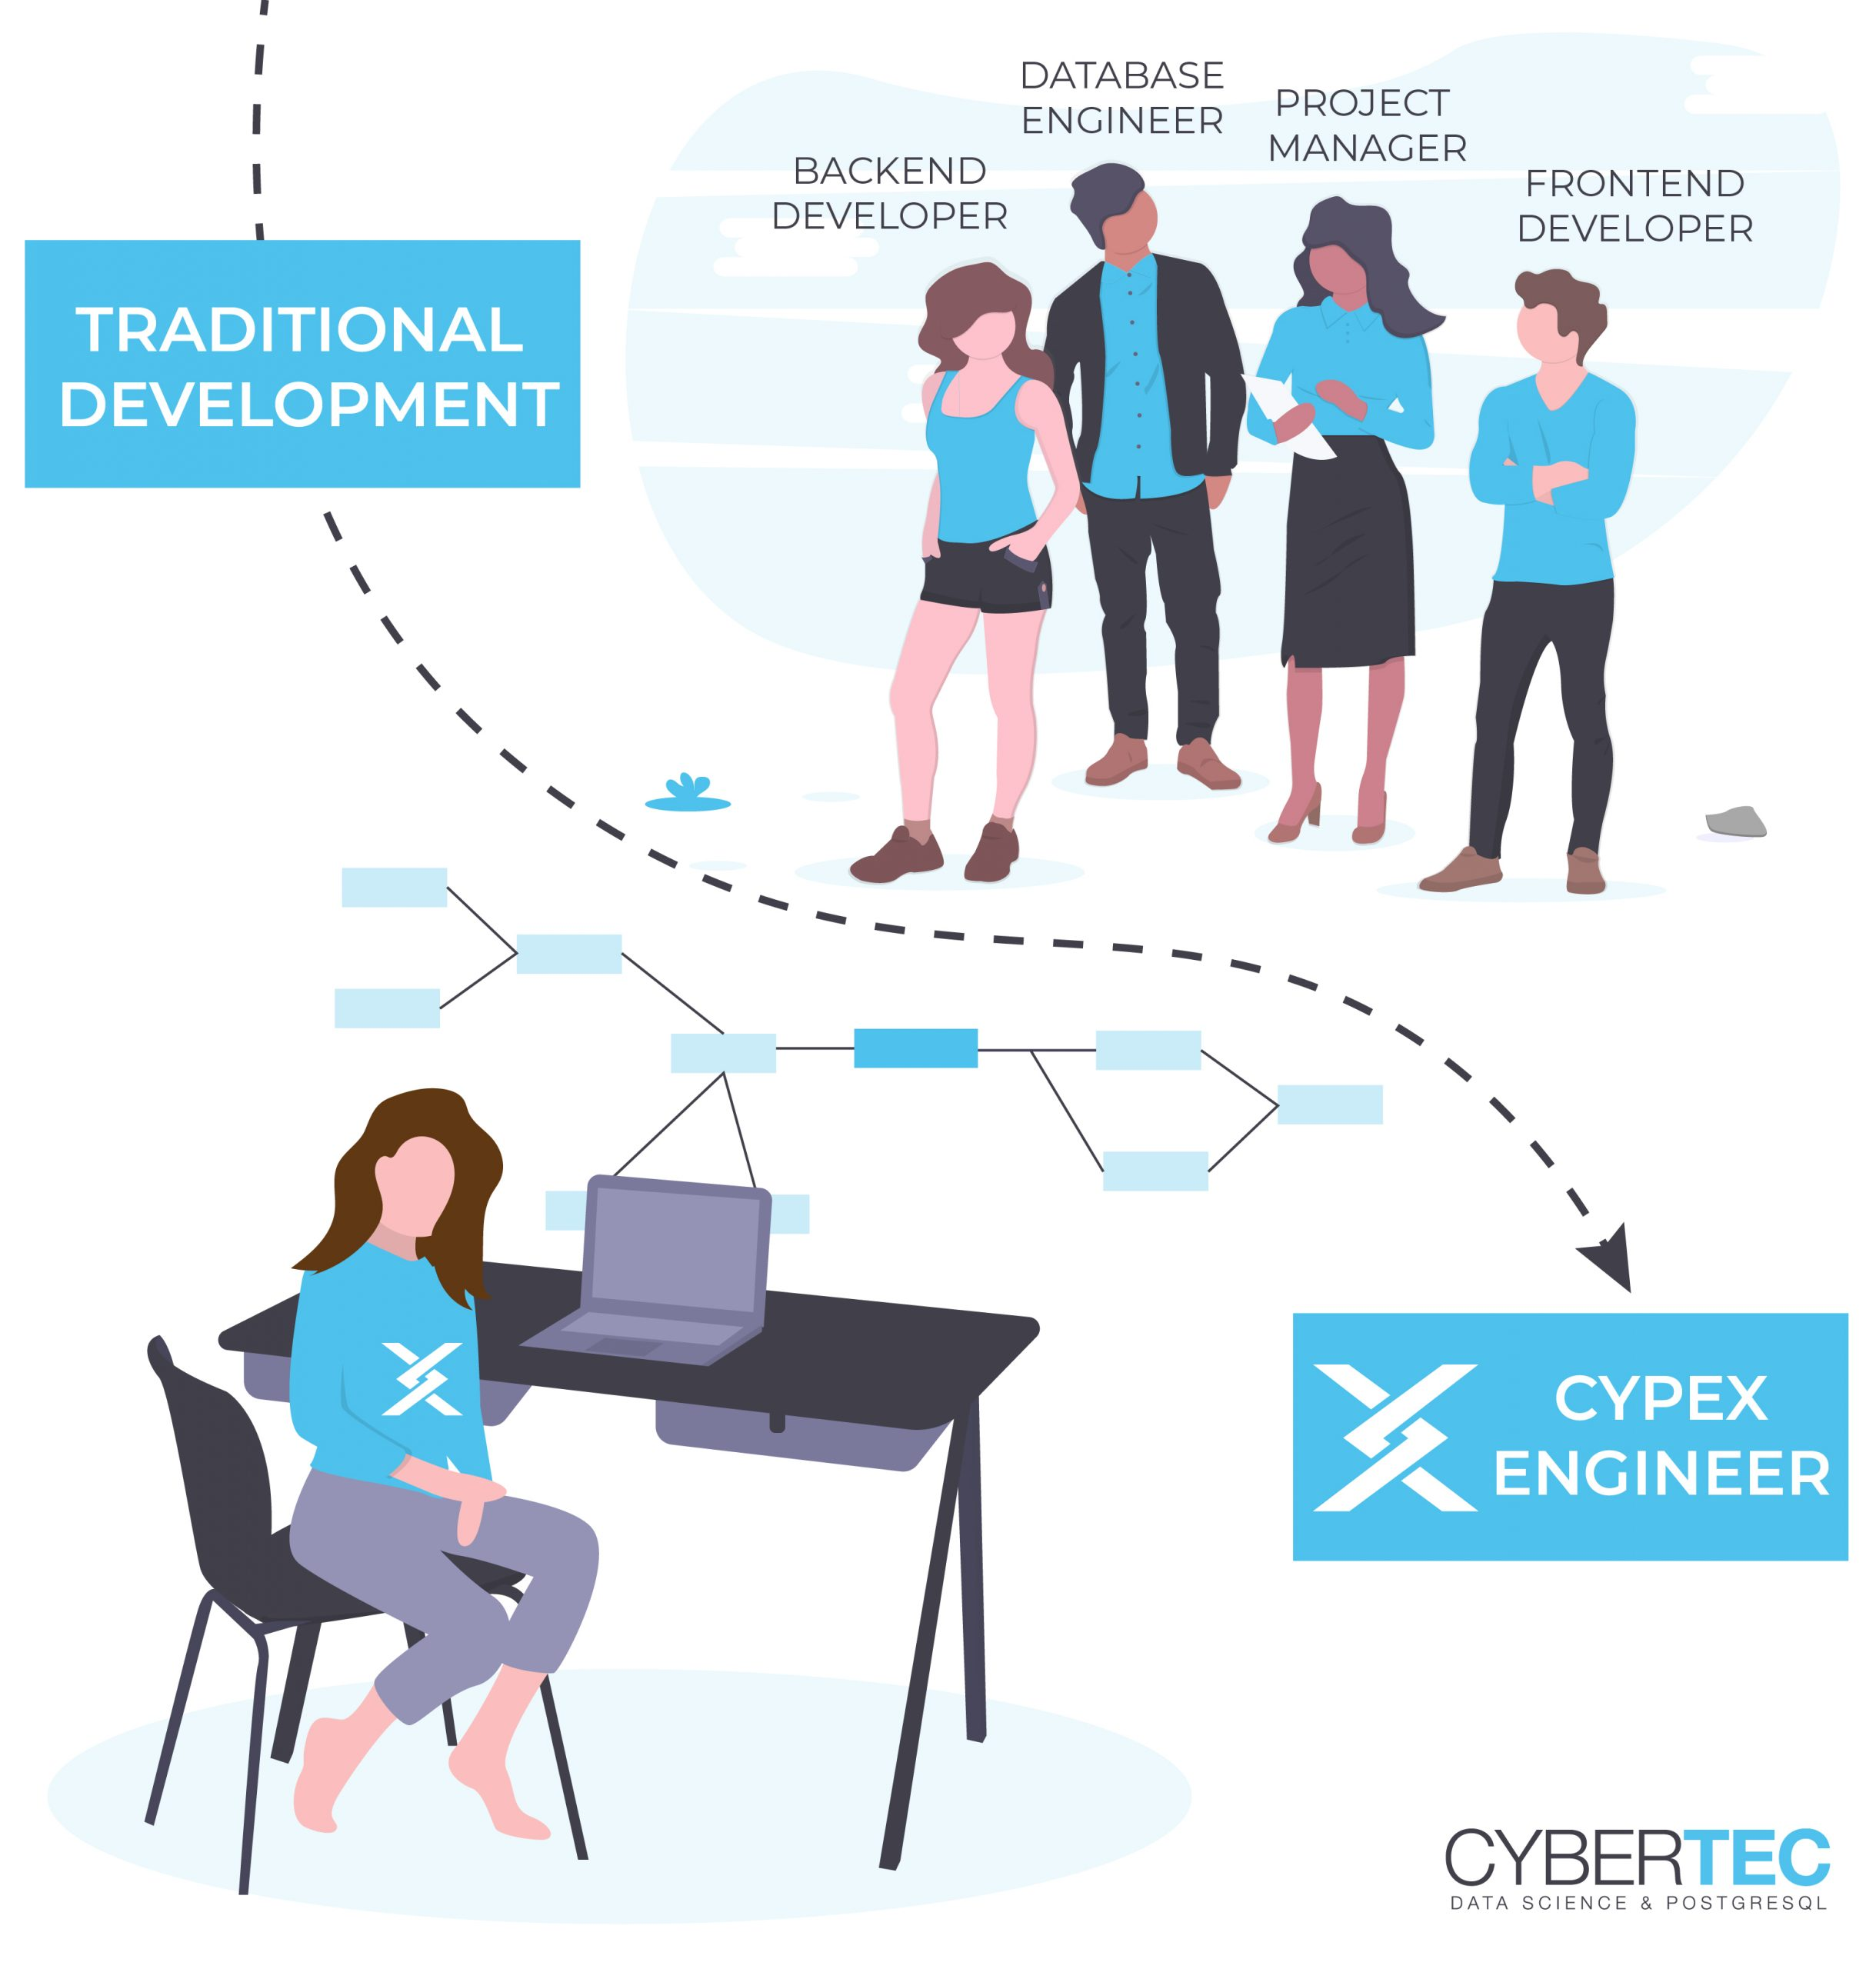 traditional development process vs. CYPEX